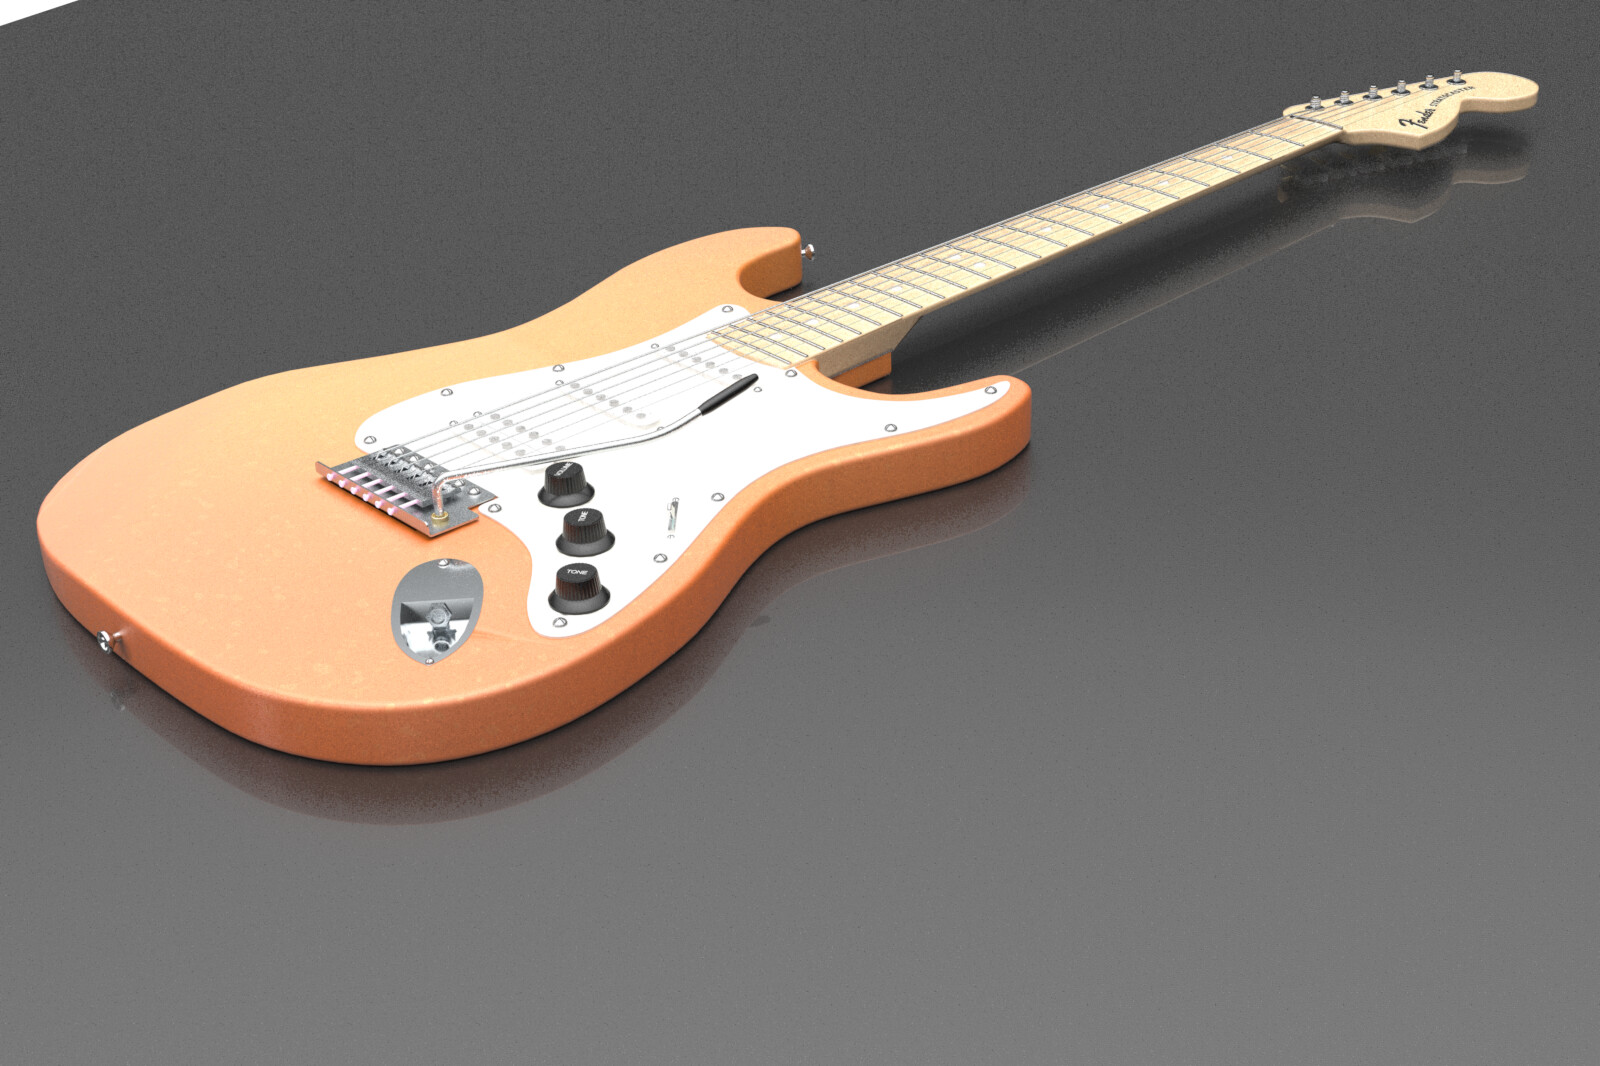 Fender Strat modeled in Modo - this is an in-modo render. I converted this model to a native ArchiCAD object, with appropriate vectorial cleanups and the ability for the materials to be easily tweaked in use.